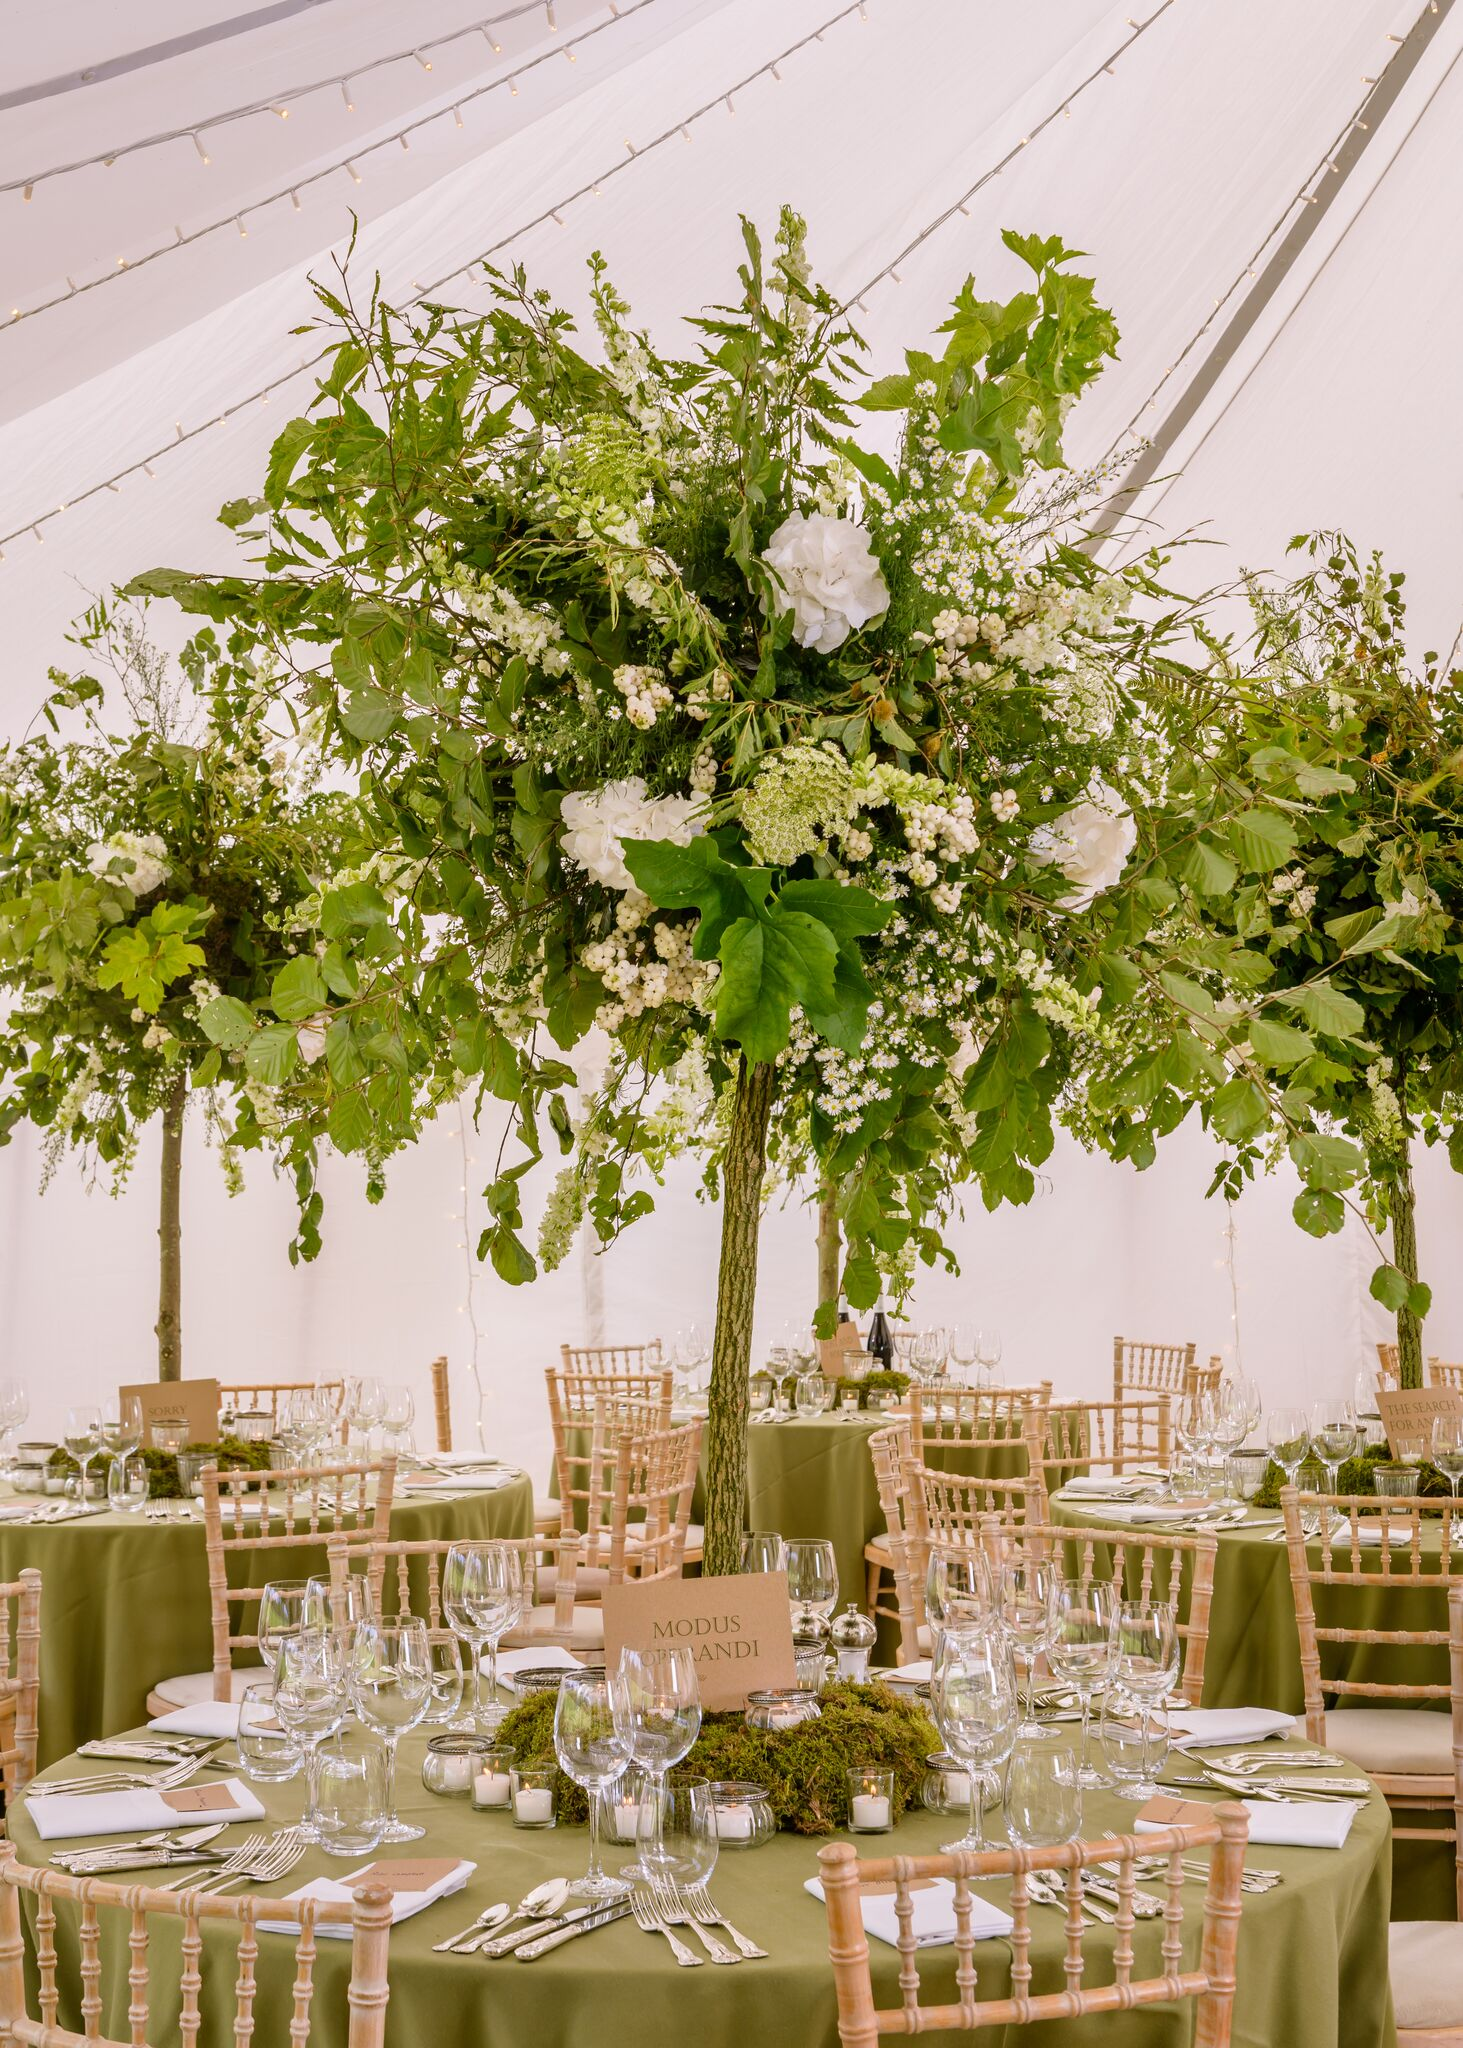 Get-Knotted Enchanted Forest theme table decor (image credit - kevingreenfield.com) (7)_preview